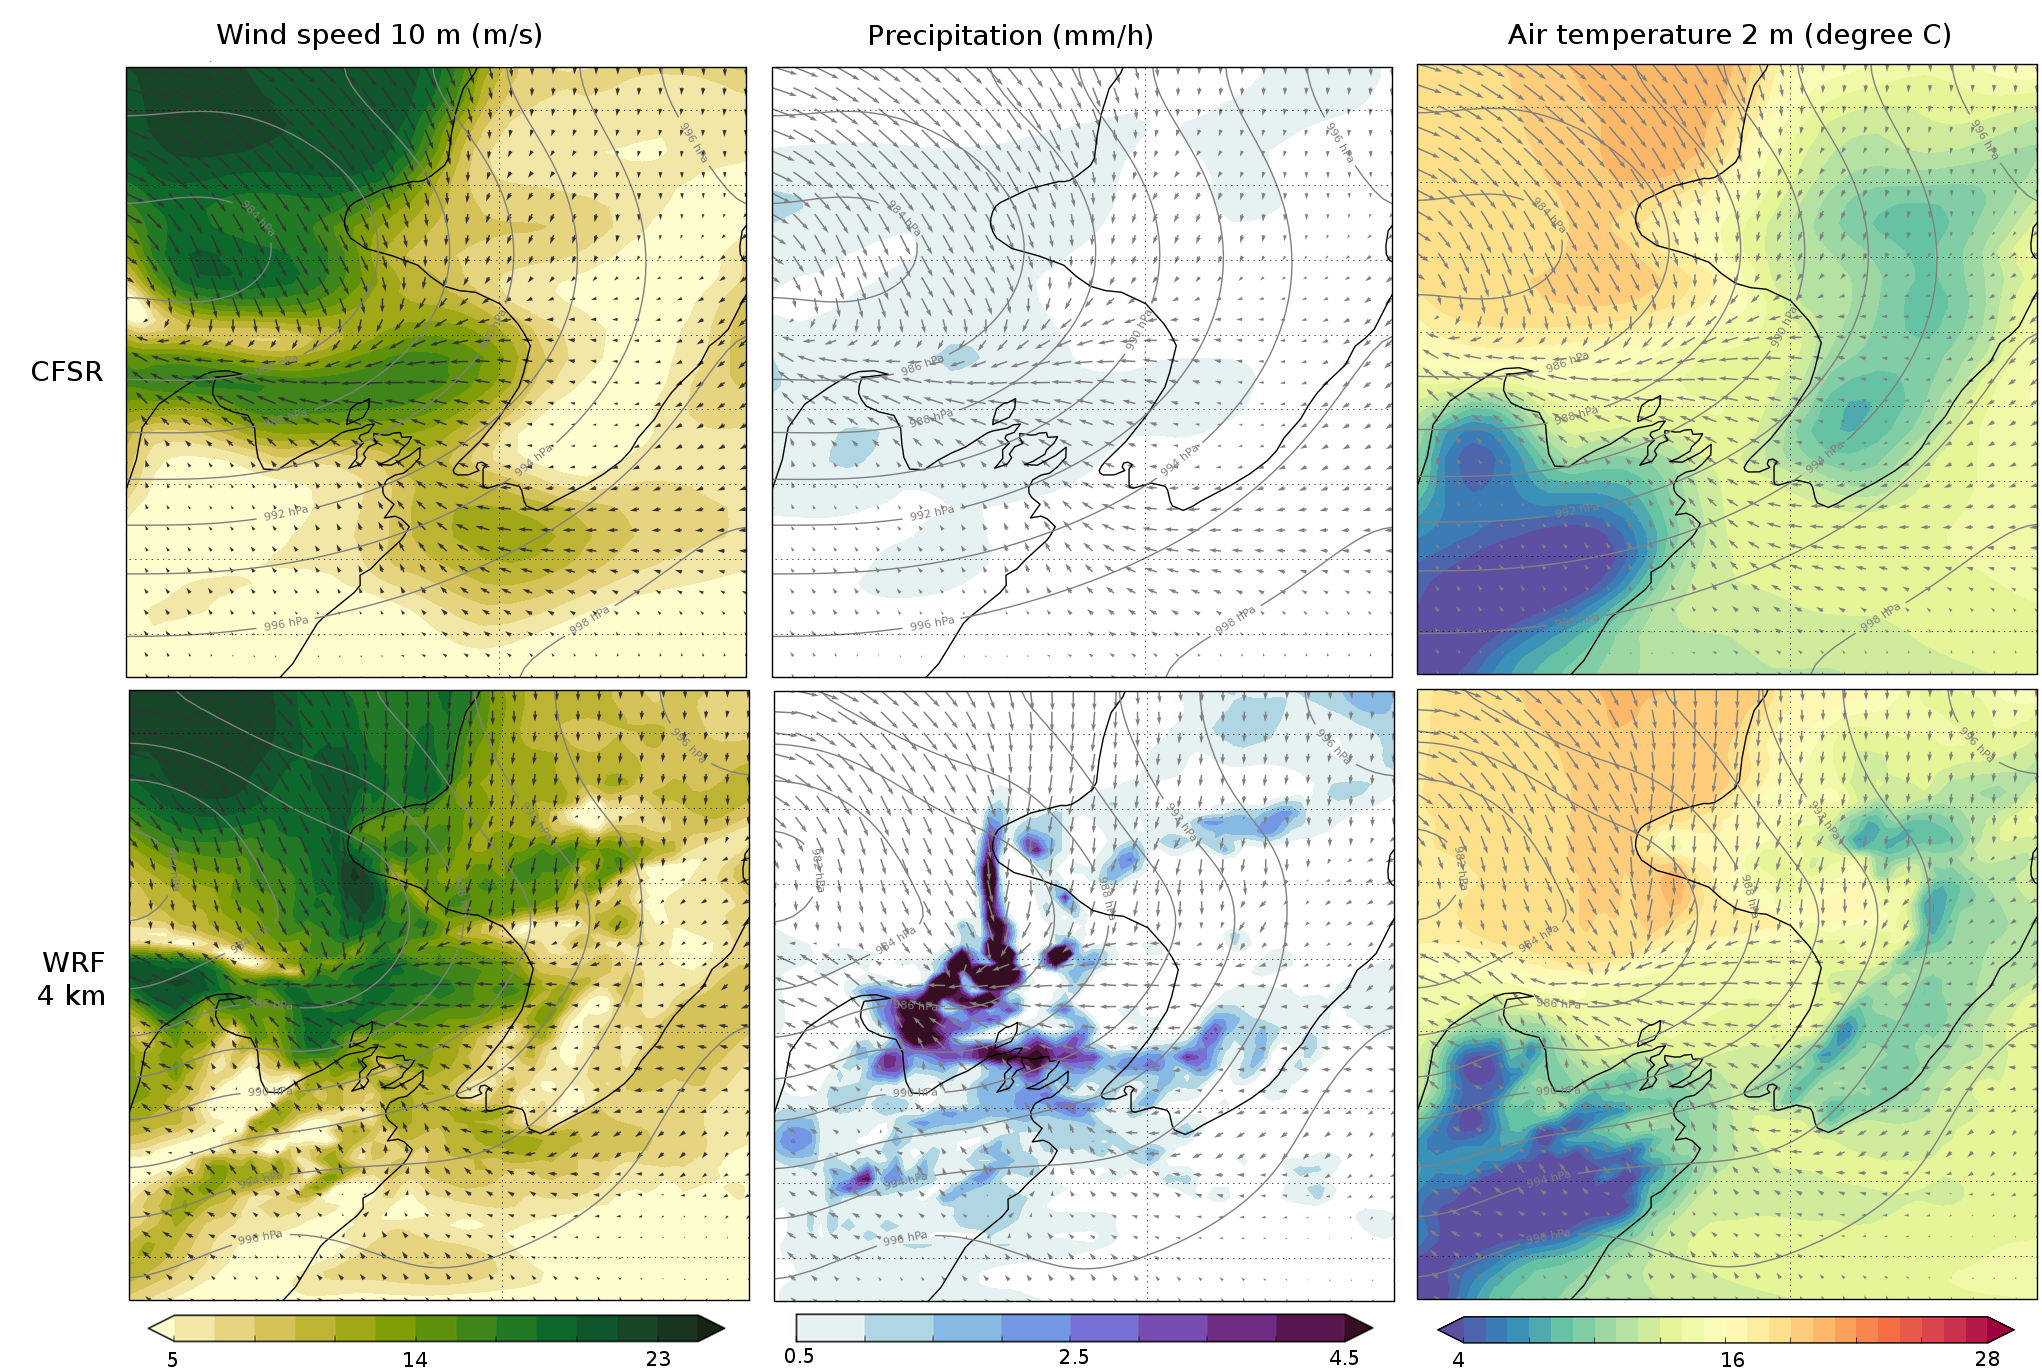 Top panels show low-resolution atmospheric products available globally from CFSR. The lower panels show the benefit of increasing the resolution in a New Zealand specific context around regions of complex topography such as the Cook Strait. Higher resolution modelling increases the accuracy of the data.